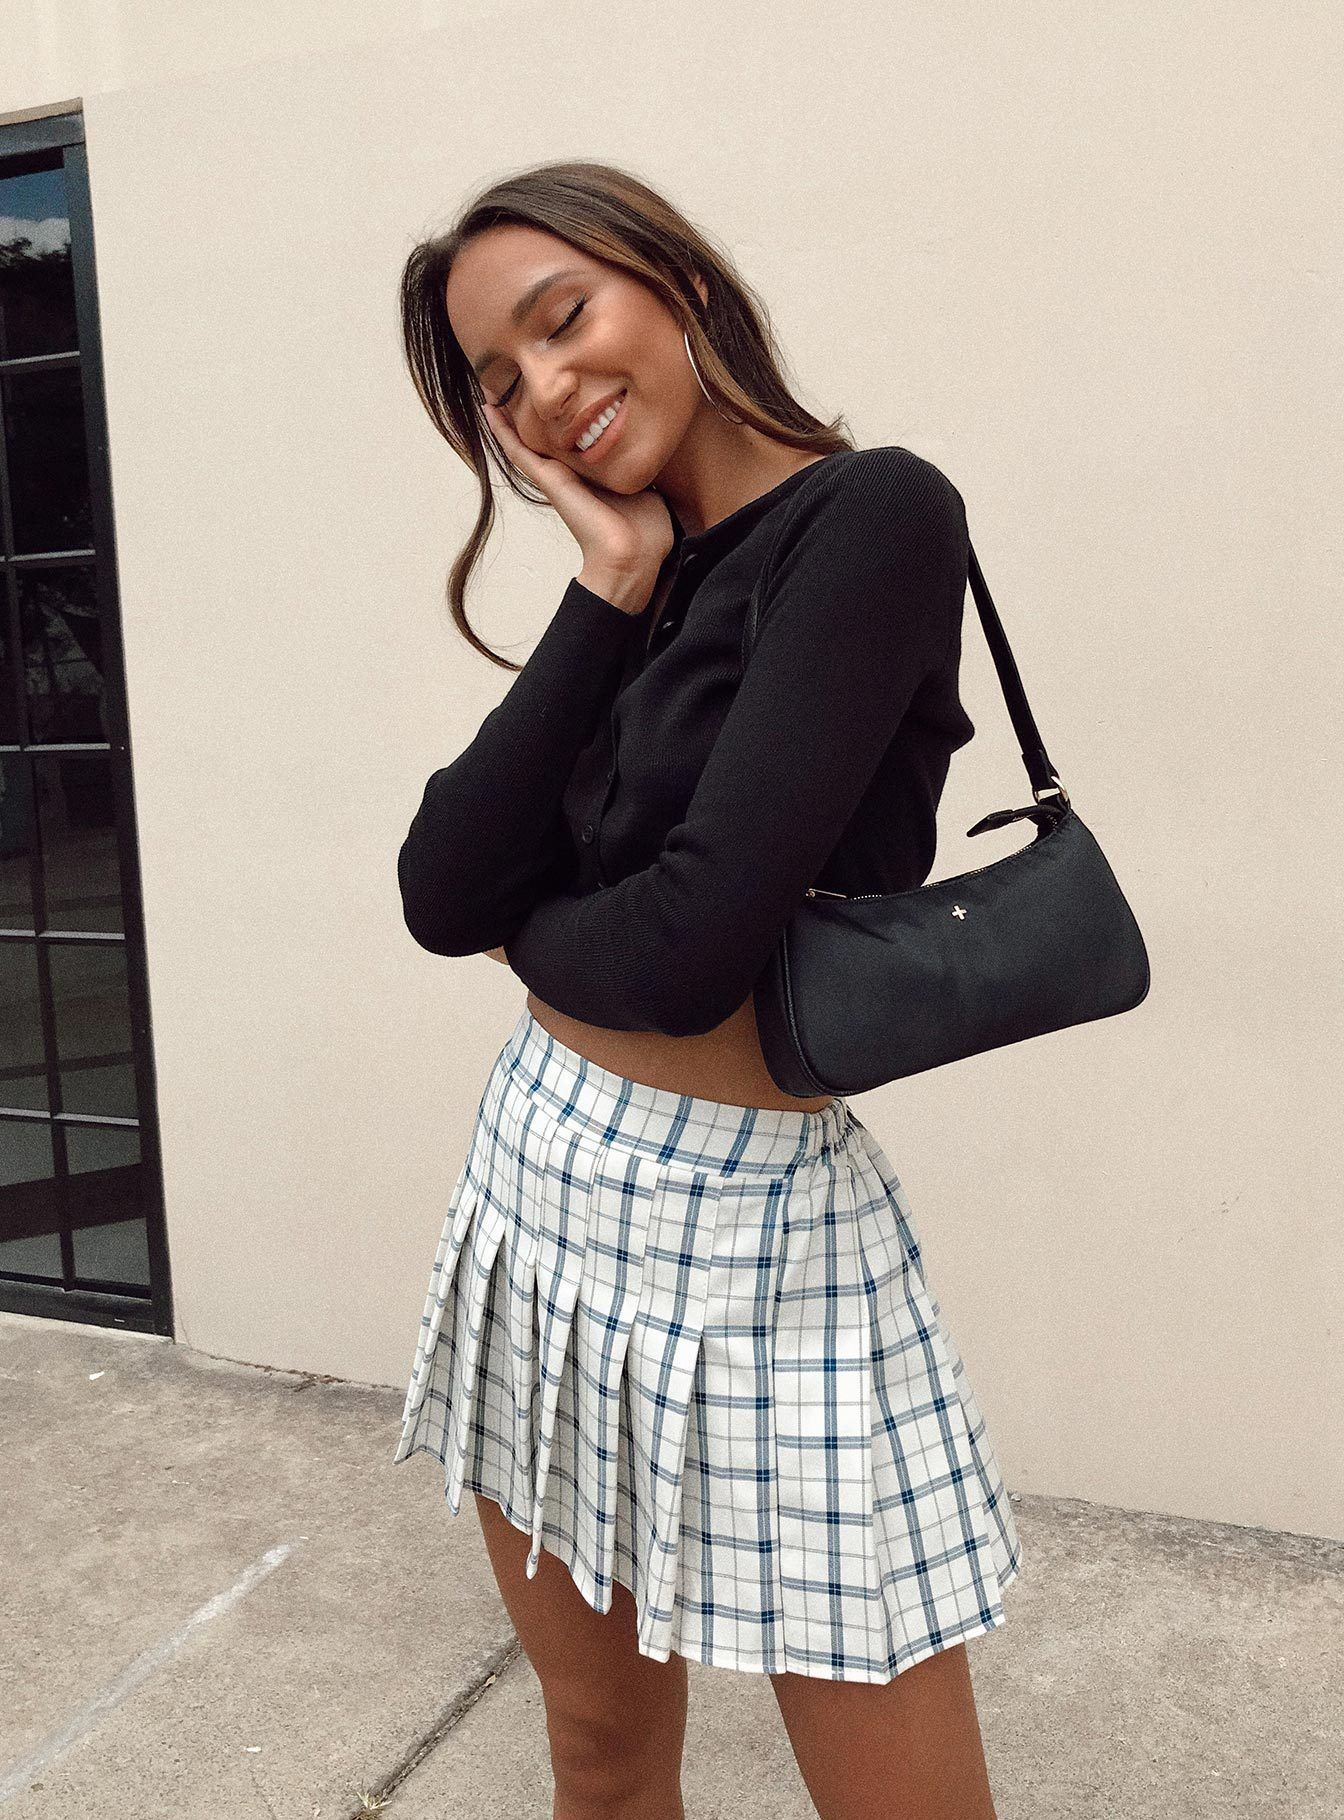 Lona Mini Skirt In 2020 Cute Skirt Outfits Skirt Outfits Summer Tennis Skirt Outfit